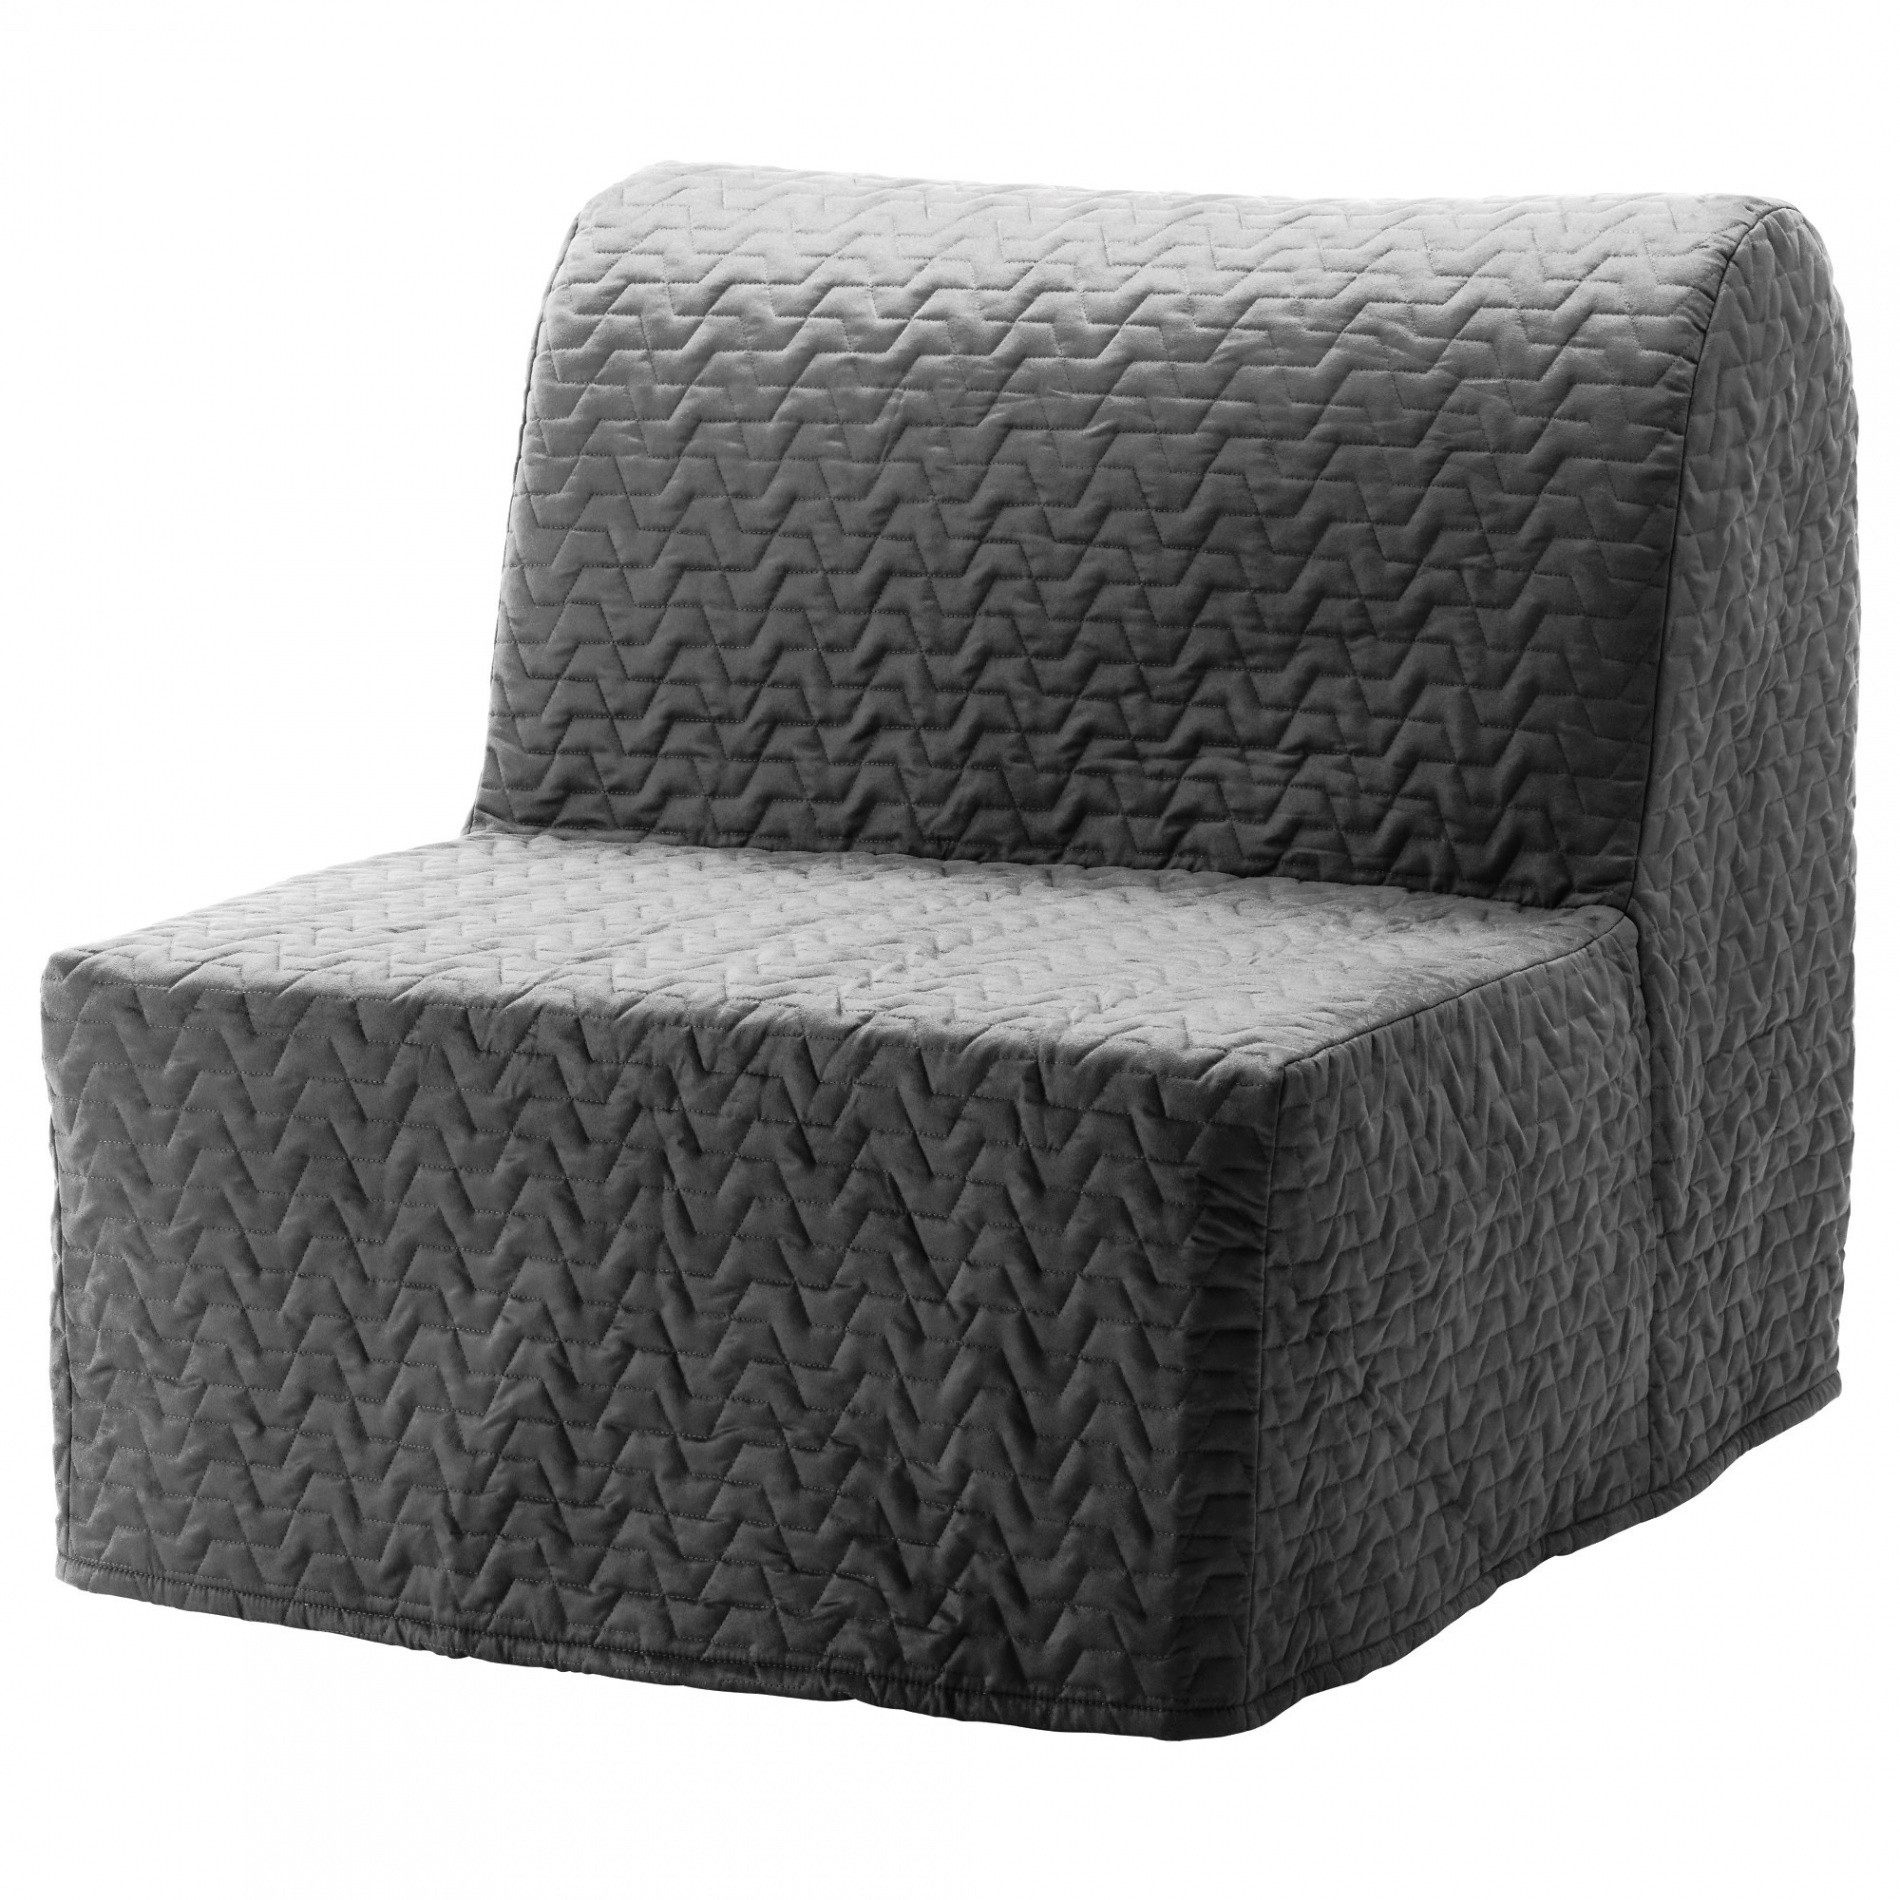 Fauteuil Convertible Lit 1 Place Luxe Chauffeuse Lit 2 Places Chauffeuse soldes Fauteuil Lit Best Fauteuil